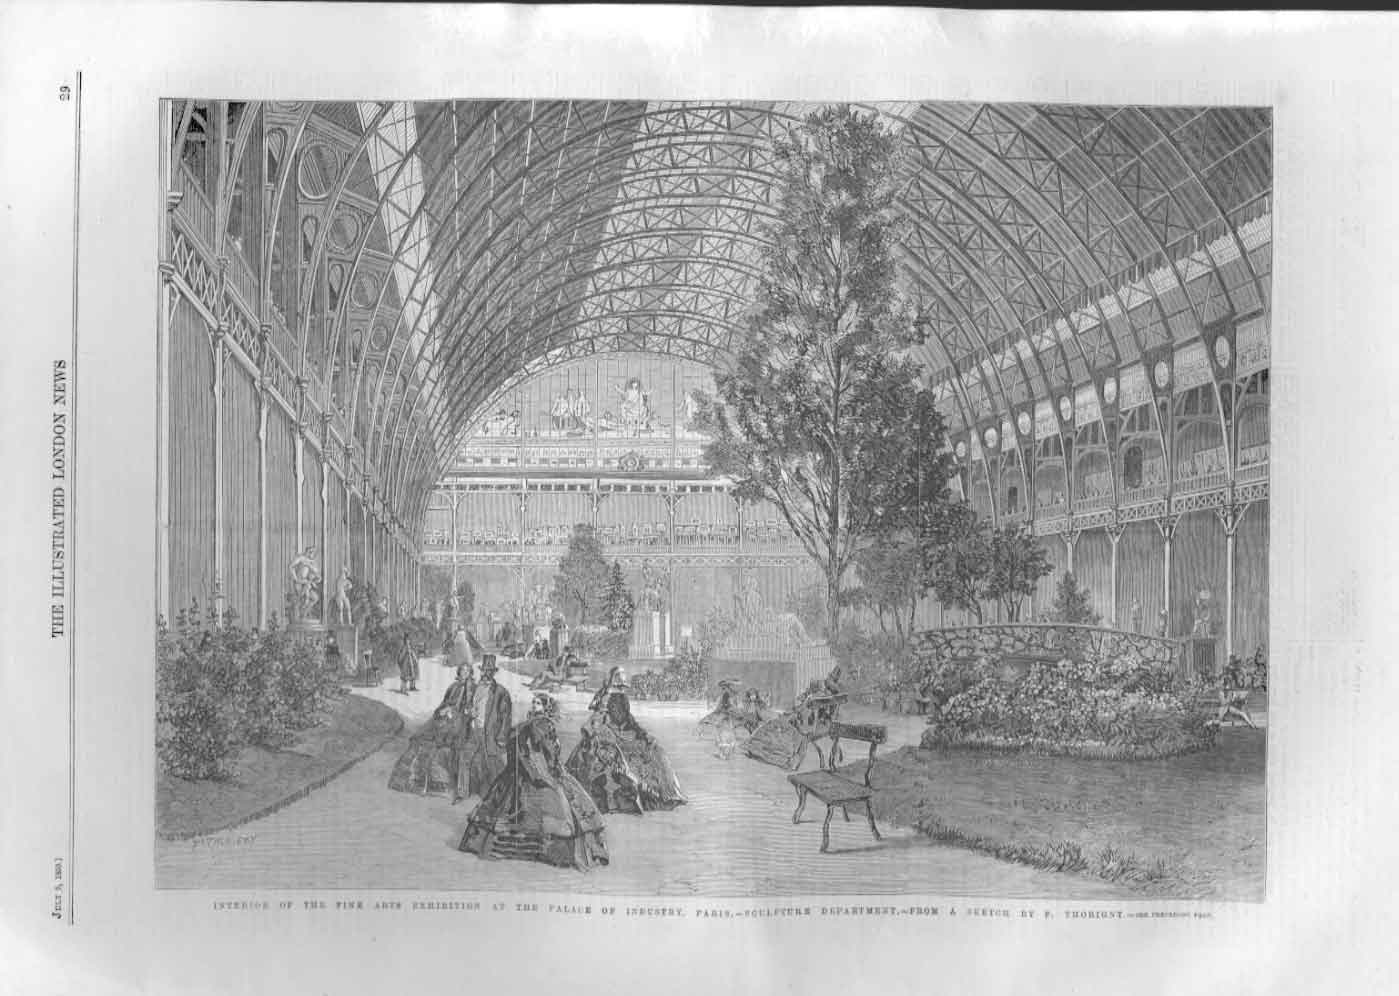 [Print Interior Palace Industry Paris France 0A29A476 Old Original]